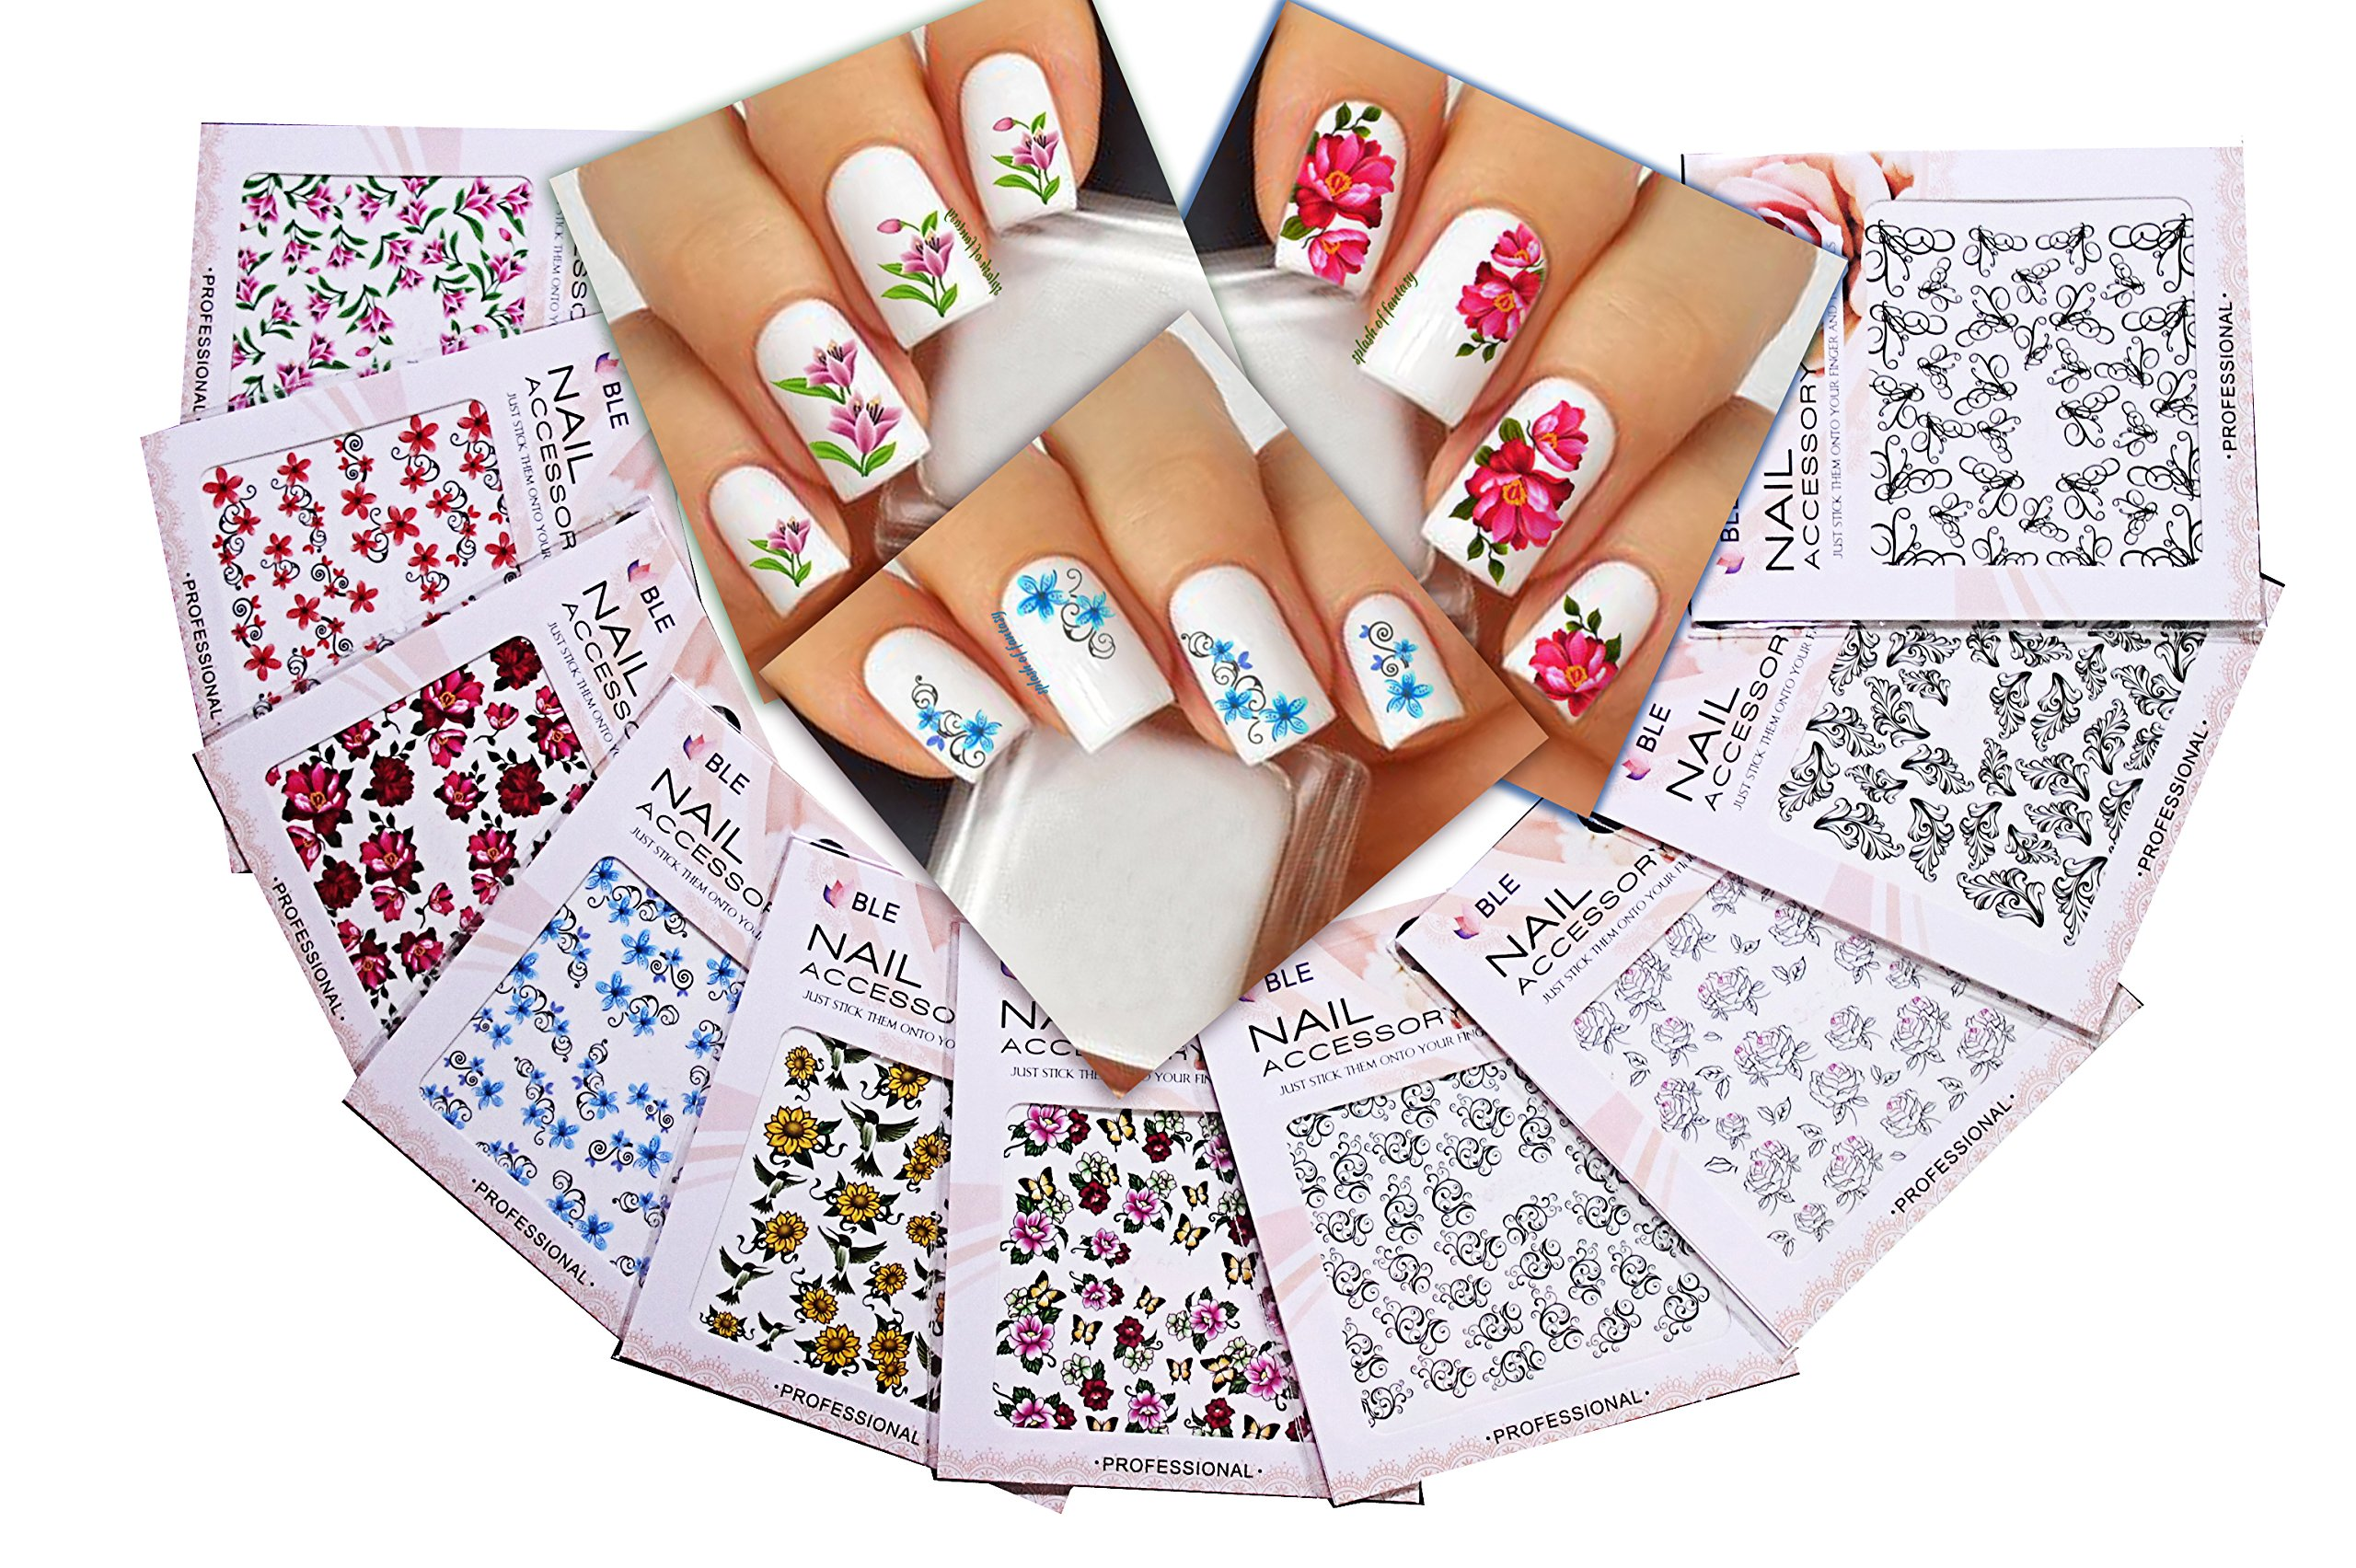 Nail Art Water Slide Tattoo Stickers Decals ♥ Immense Designs: Flowers / Leaves / Butterflies / Humming Birds / ♥ For an Elegant Manicure 10 - Pack /LDII/